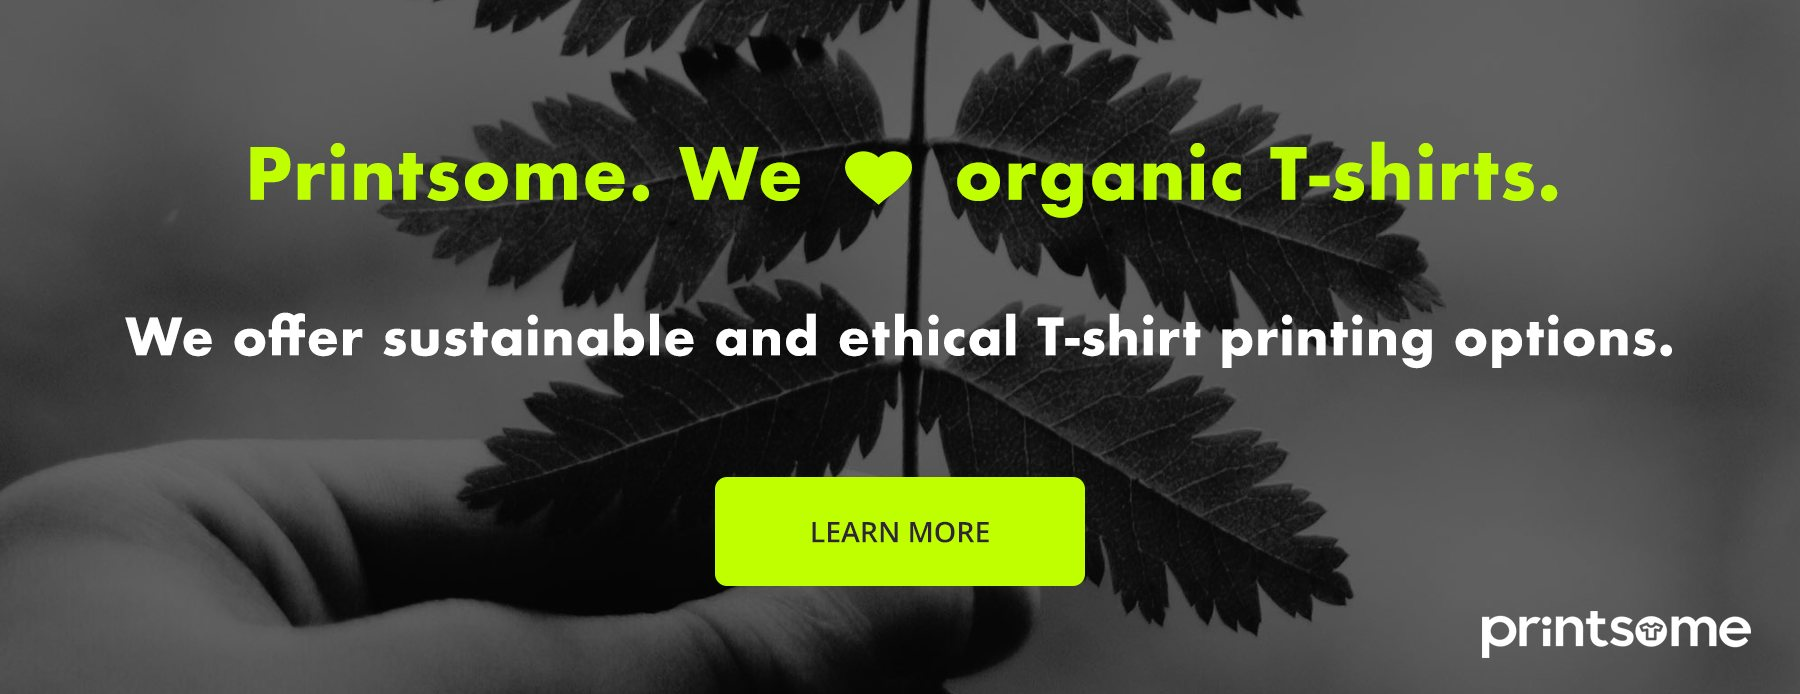 organic t-shirts, sustainable fashion, printsome, banner